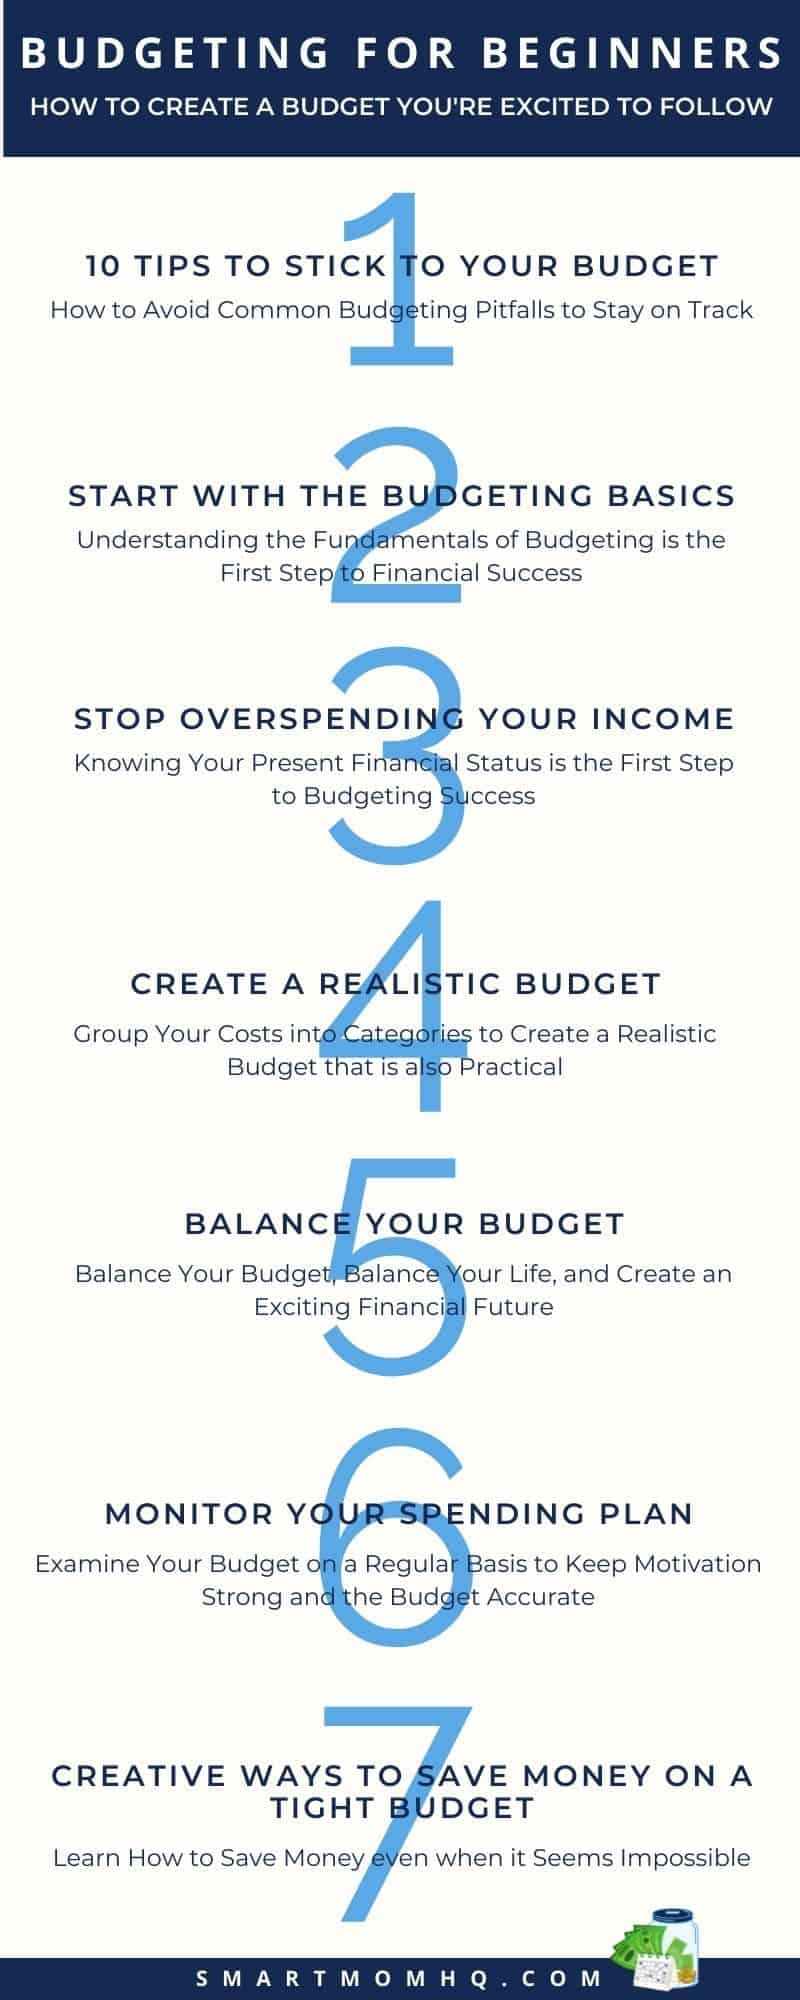 Budgeting for Beginners Steps Smart Mom HQ